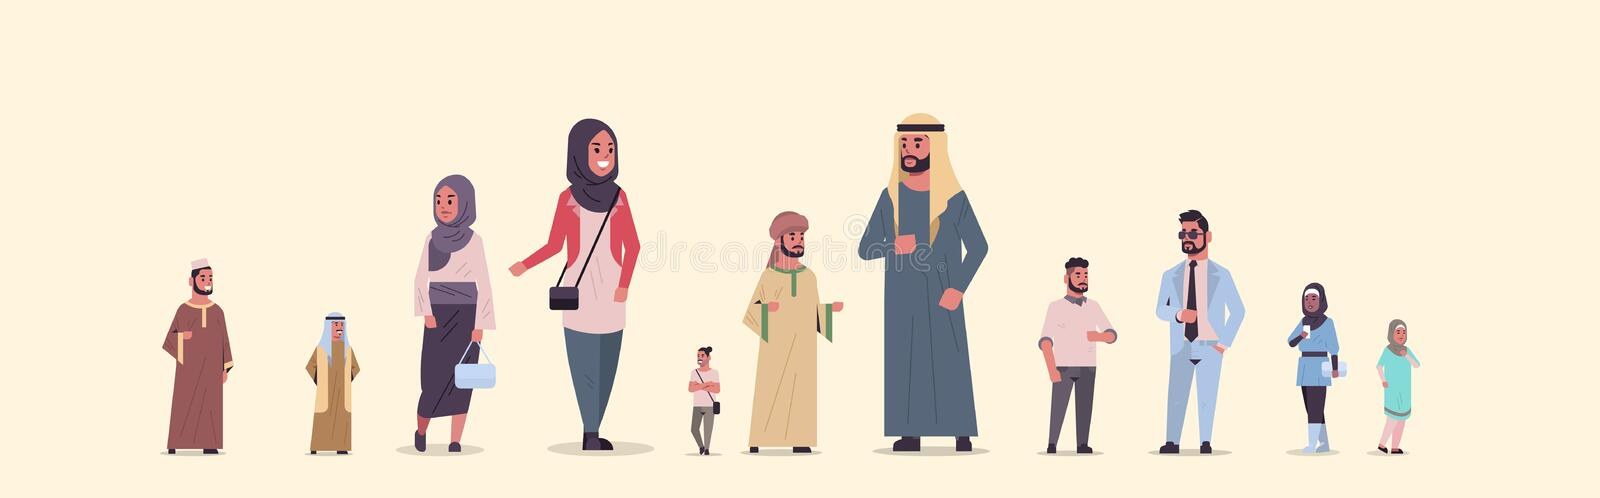 Different arabic people group standing together arab businesspeople wearing traditional clothes female male arabian vector illustration